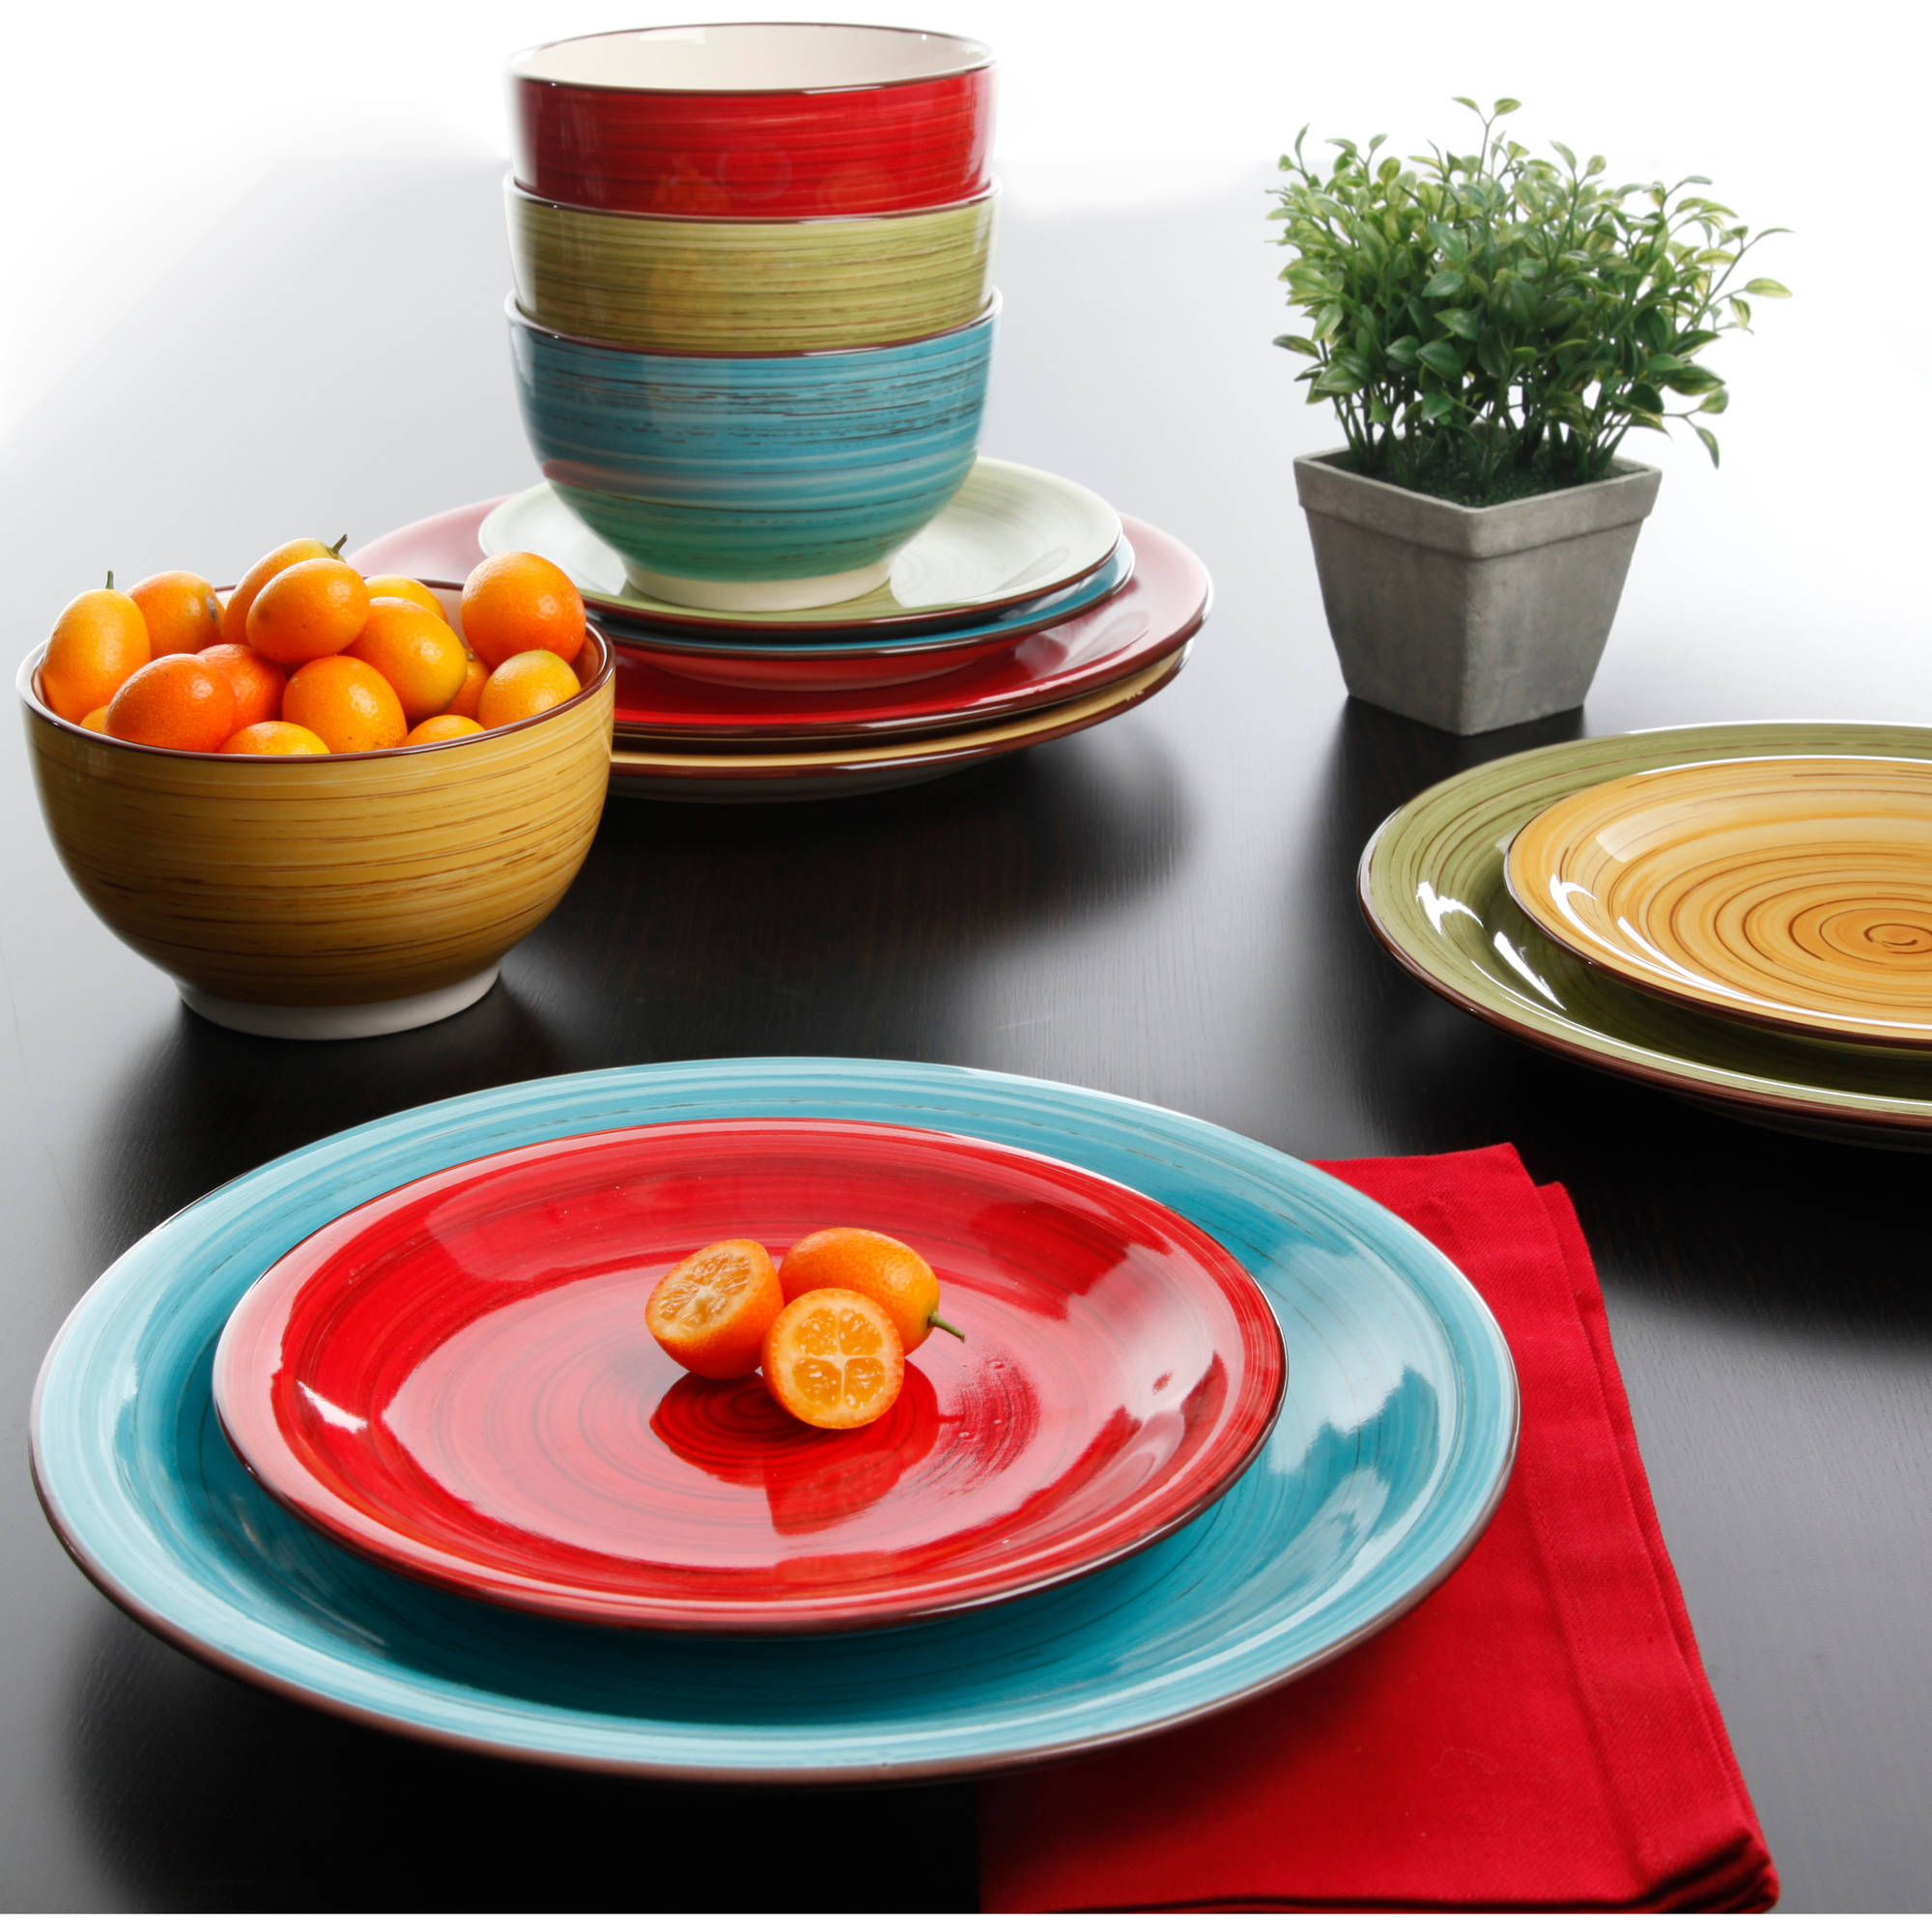 Better Homes And Gardens Festival 12 Piece Dinnerware Set, Assorted    Walmart.com